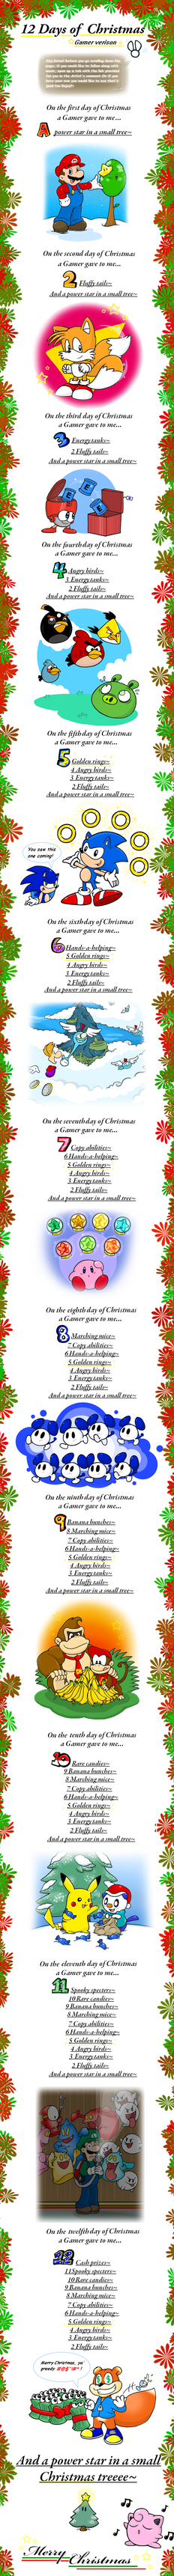 Merry Christmas 2011 by Nintendrawer